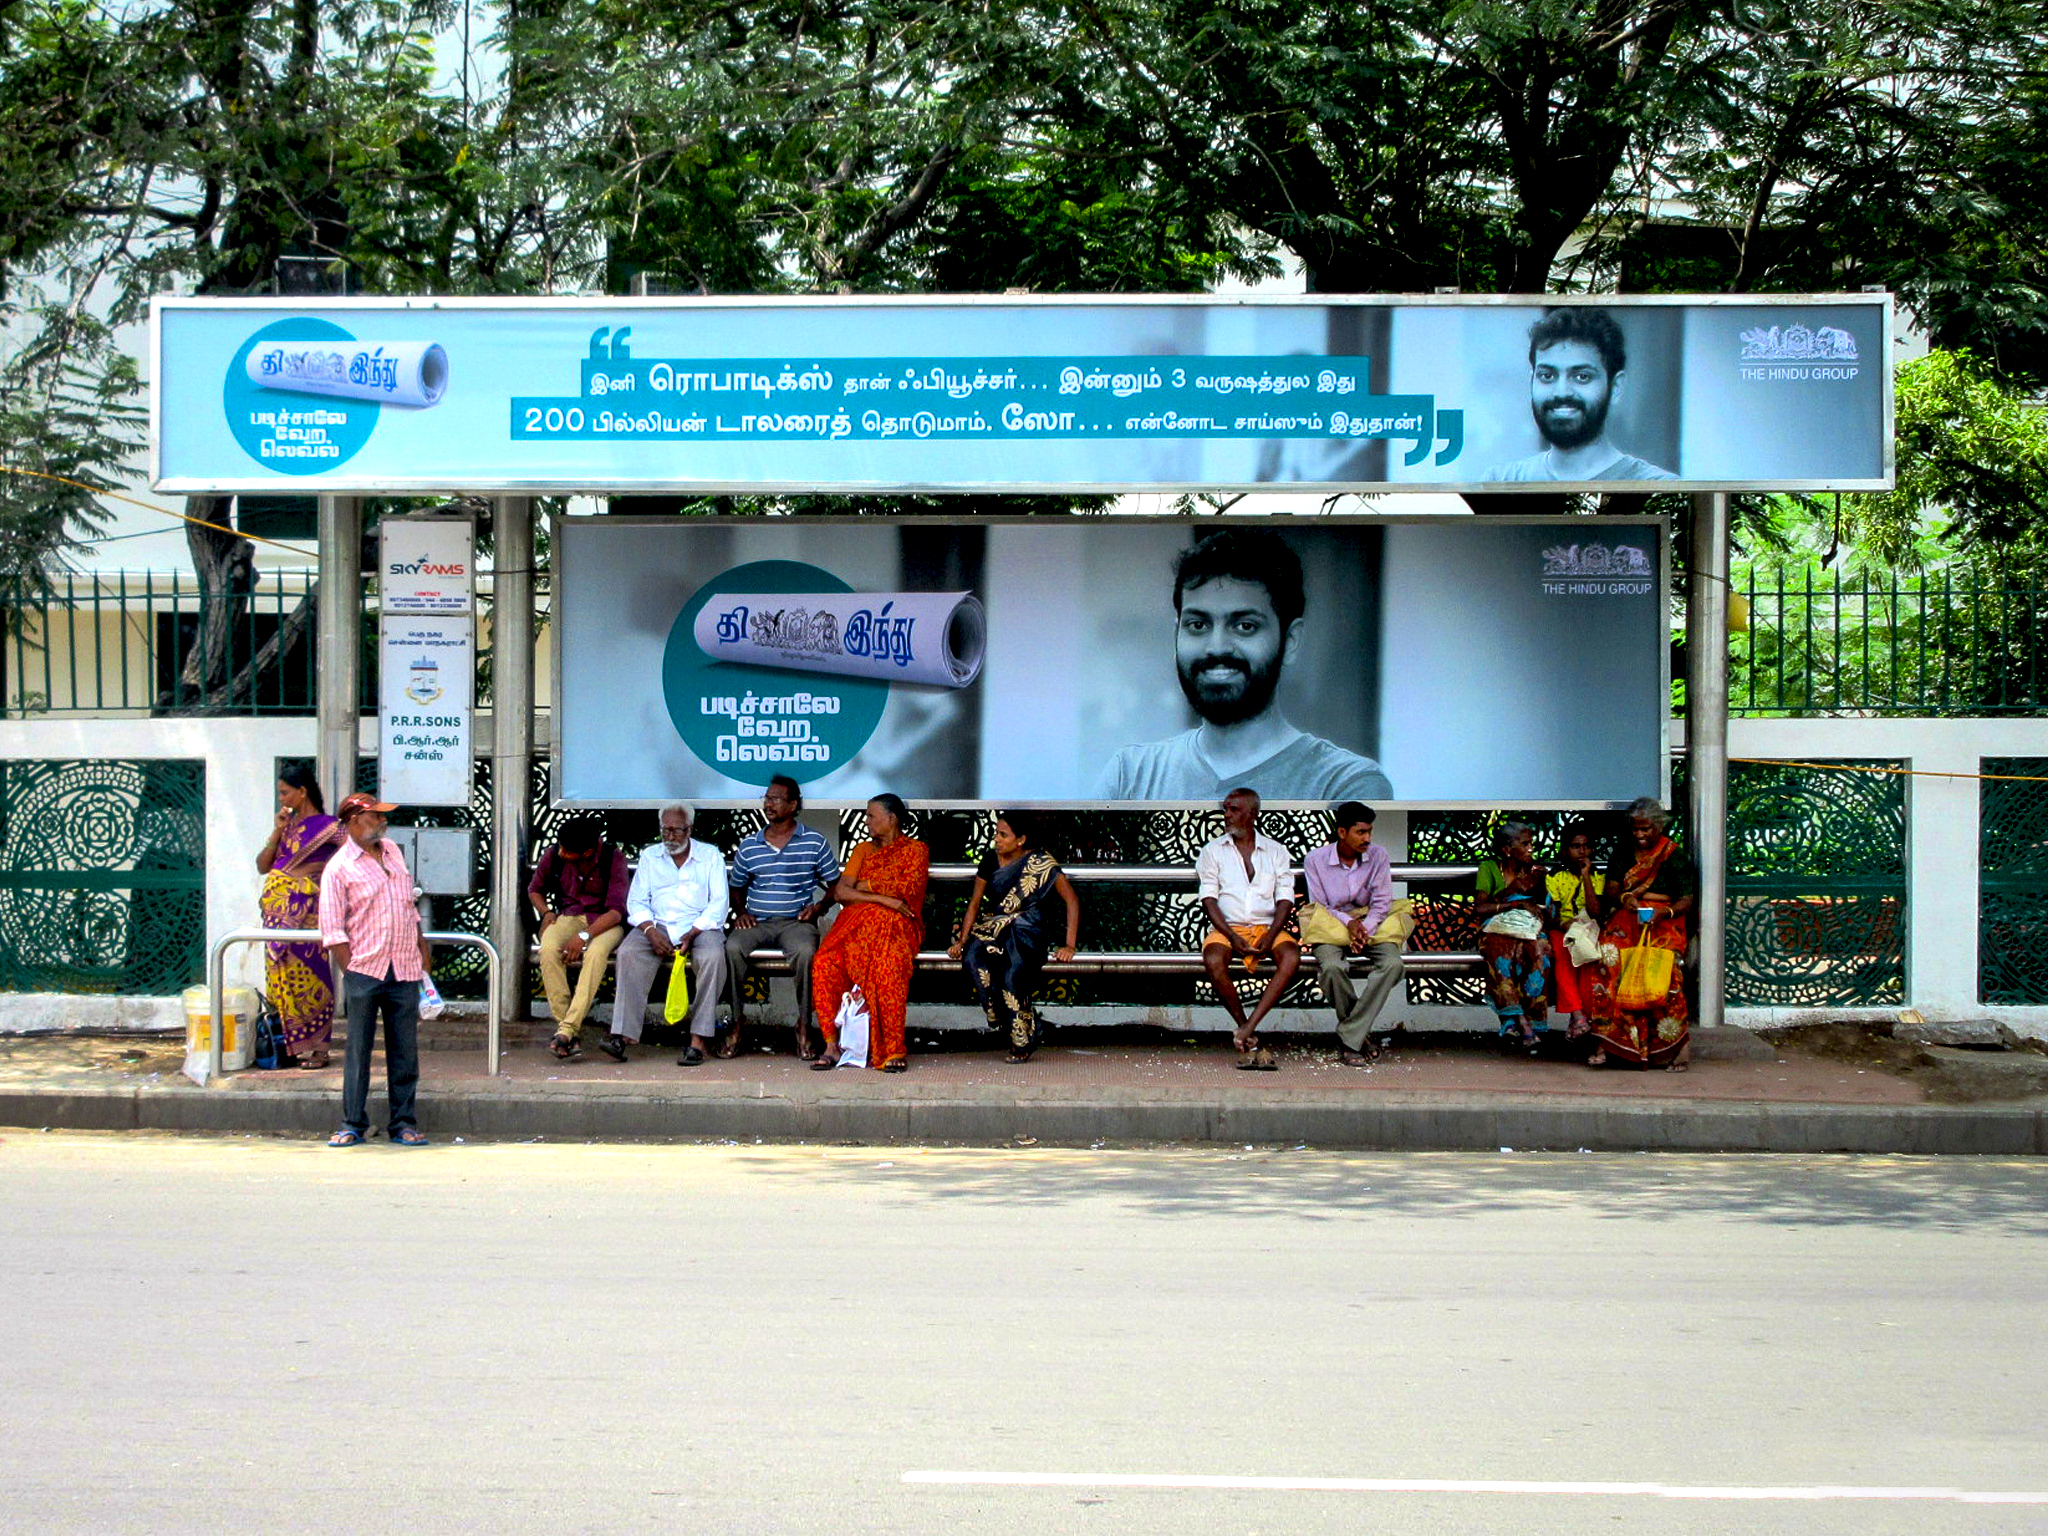 Bus shelter agency in chennai